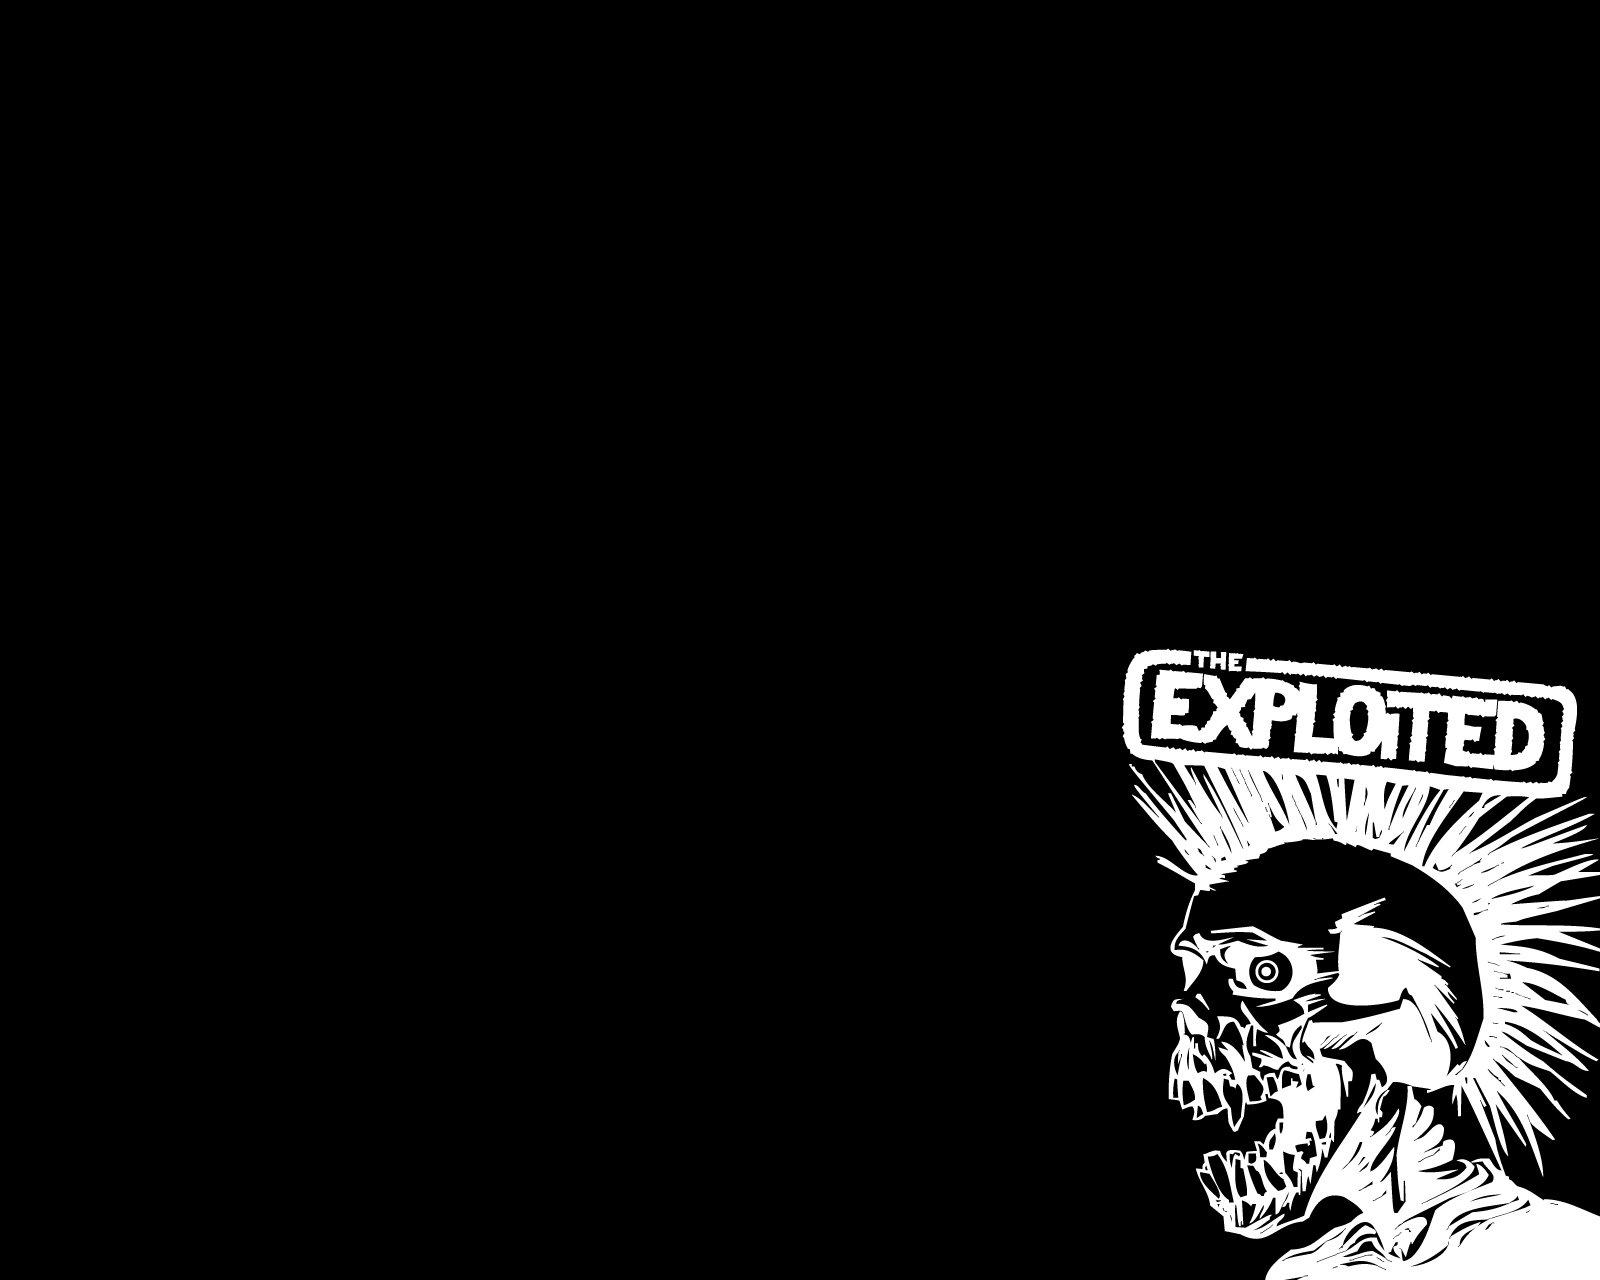 The Exploited Wallpapers and Backgrounds Image